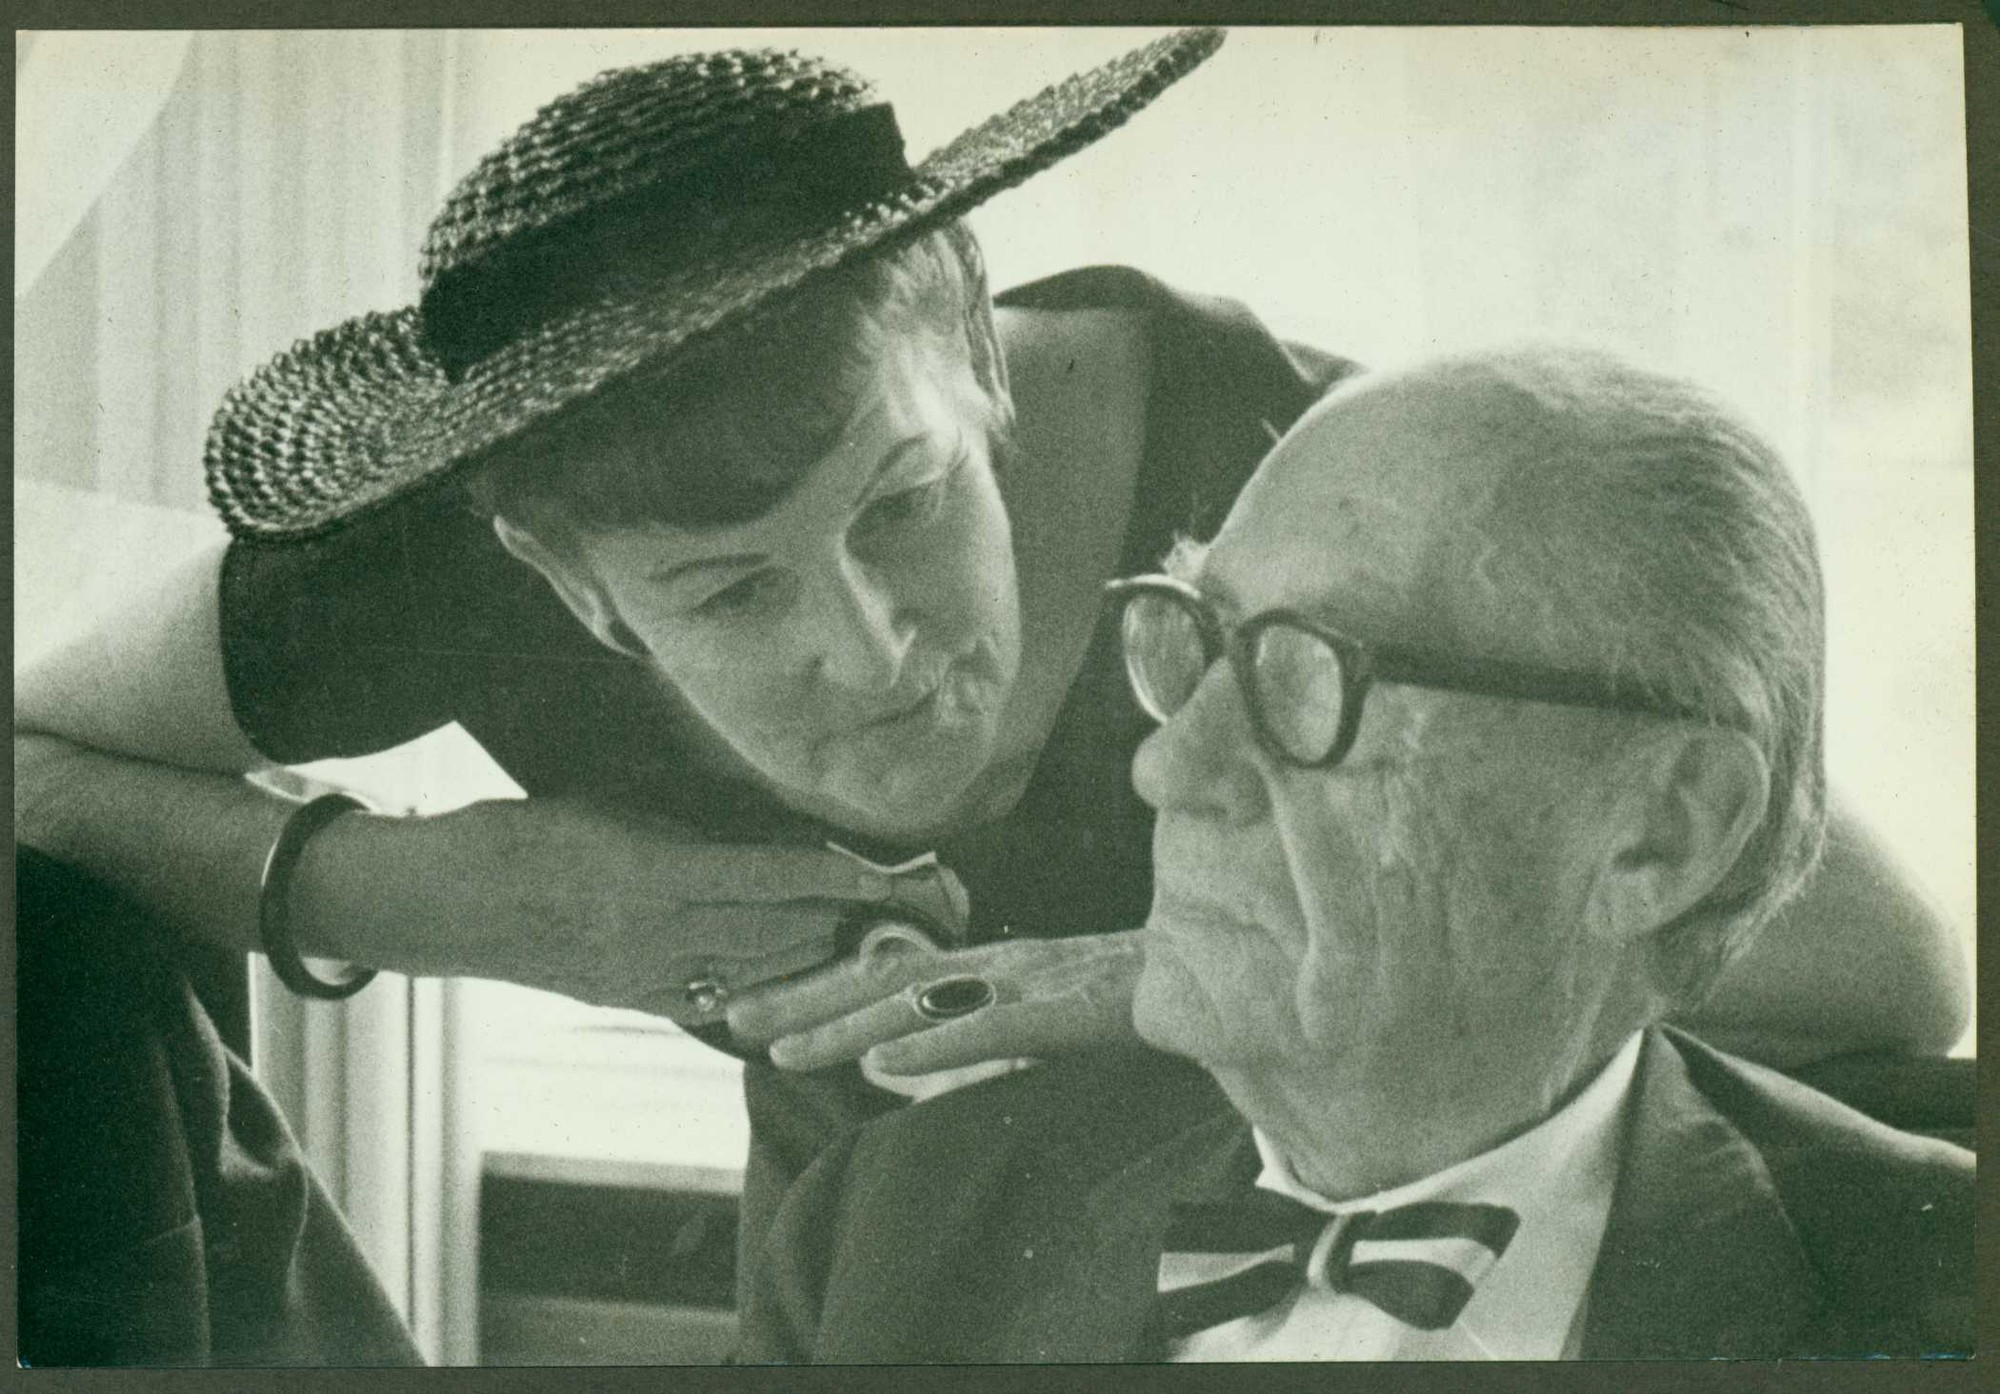 Ise and Walter Gropius